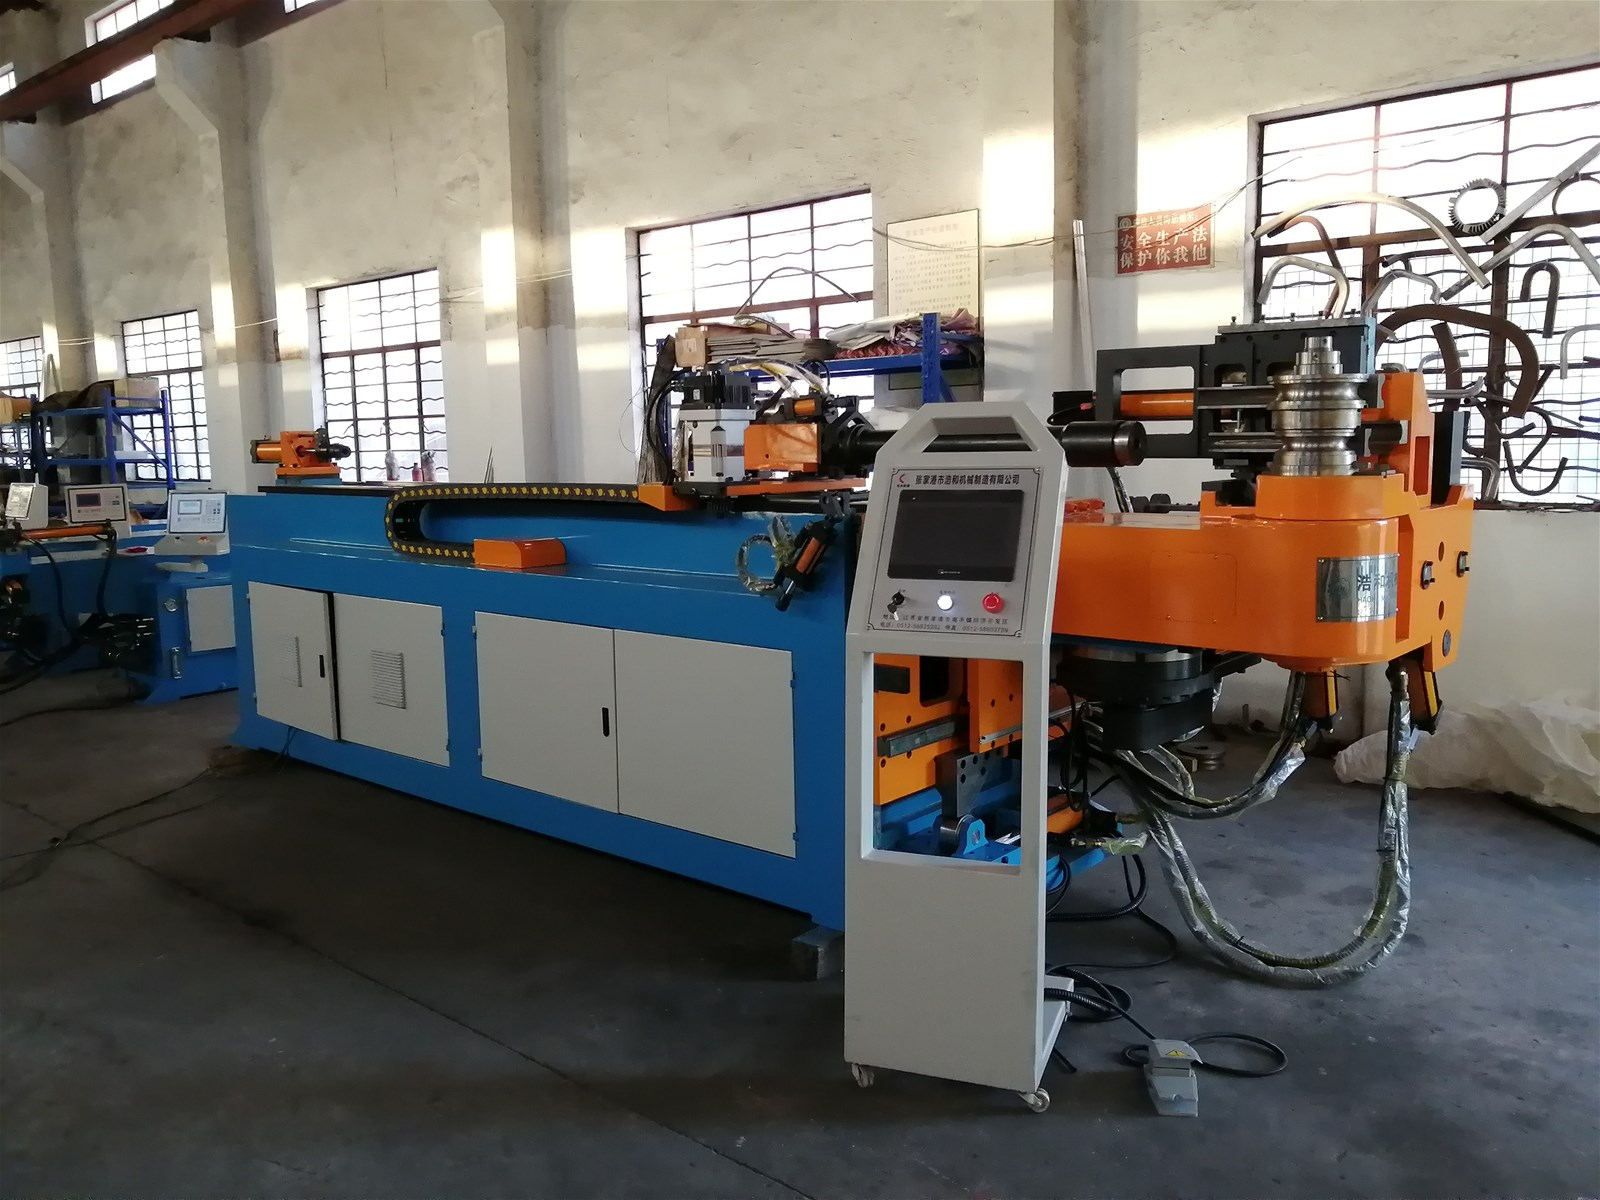 What are the functional characteristics of the hydraulic system of the pipe bender?